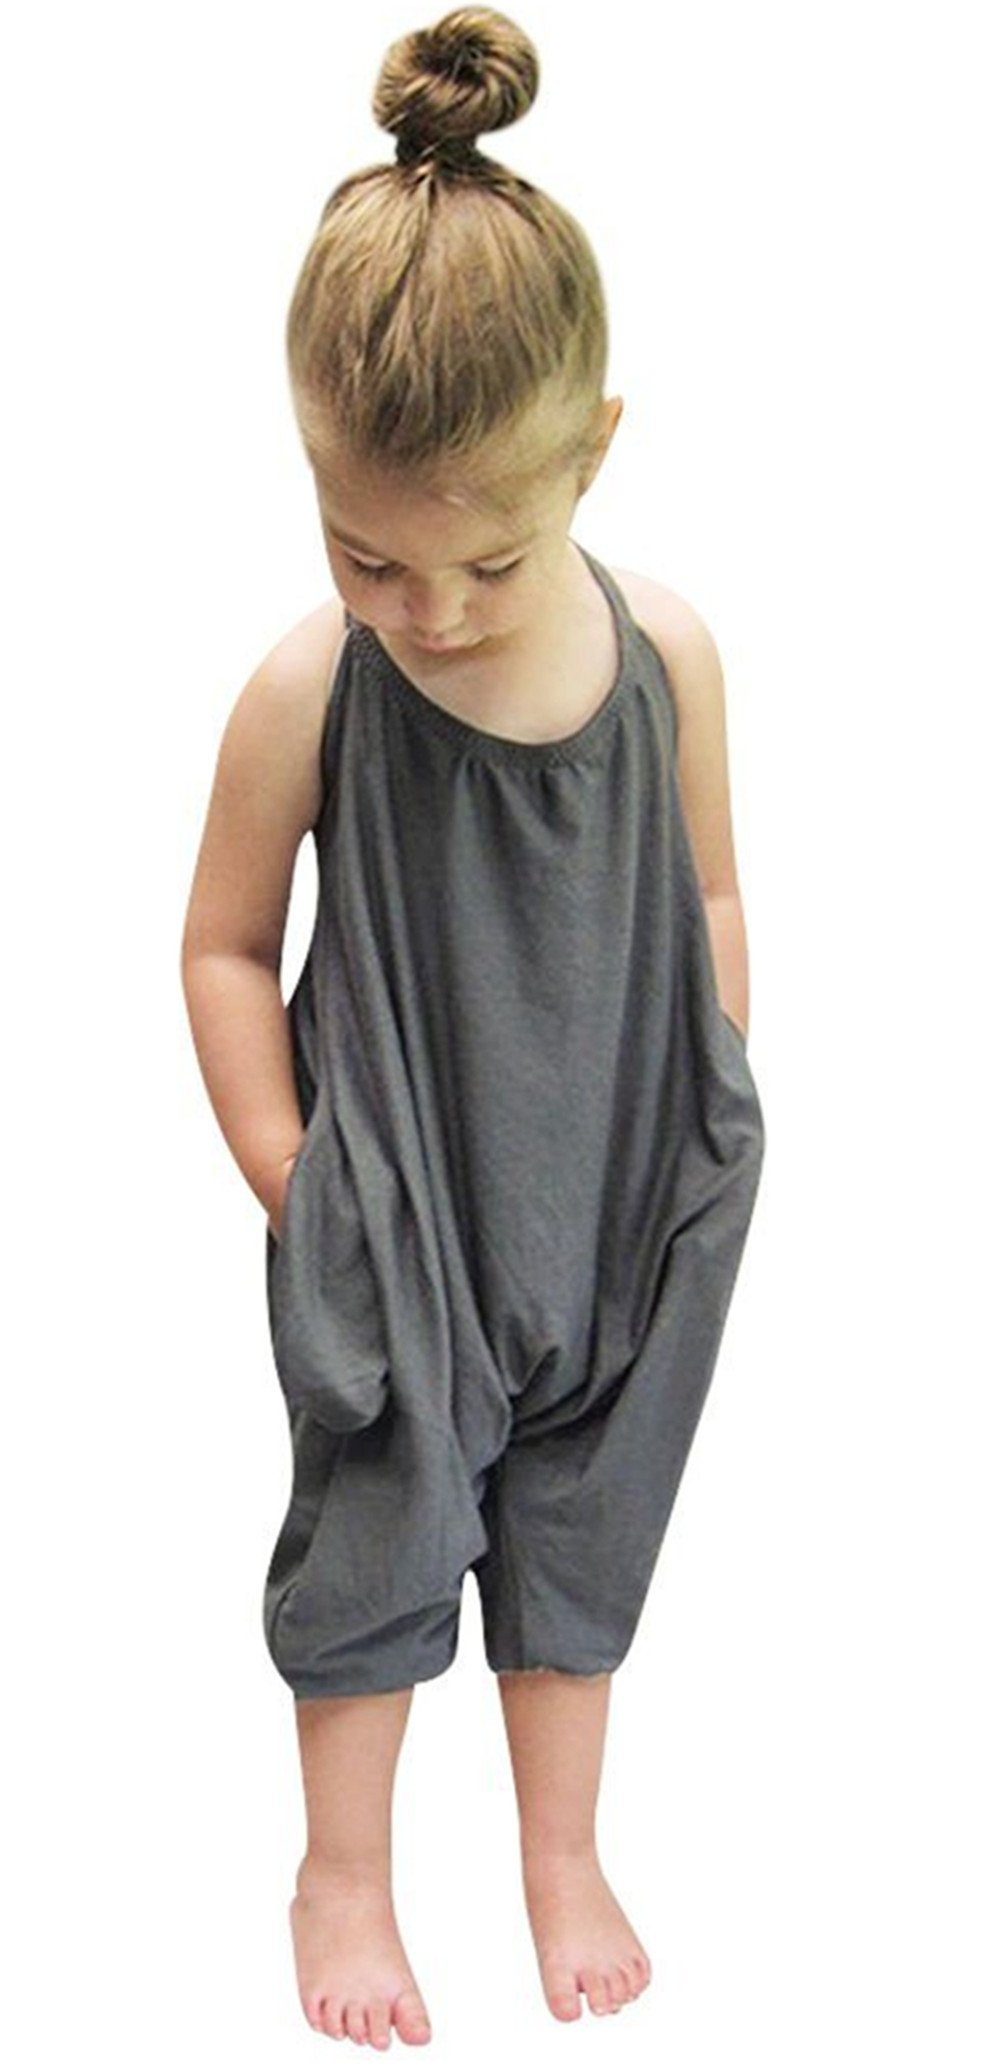 Toddler Kids Baby Girls Strap Romper Jumpsuit Harem Pant Trousers Clothes ,7-8Years,Gray